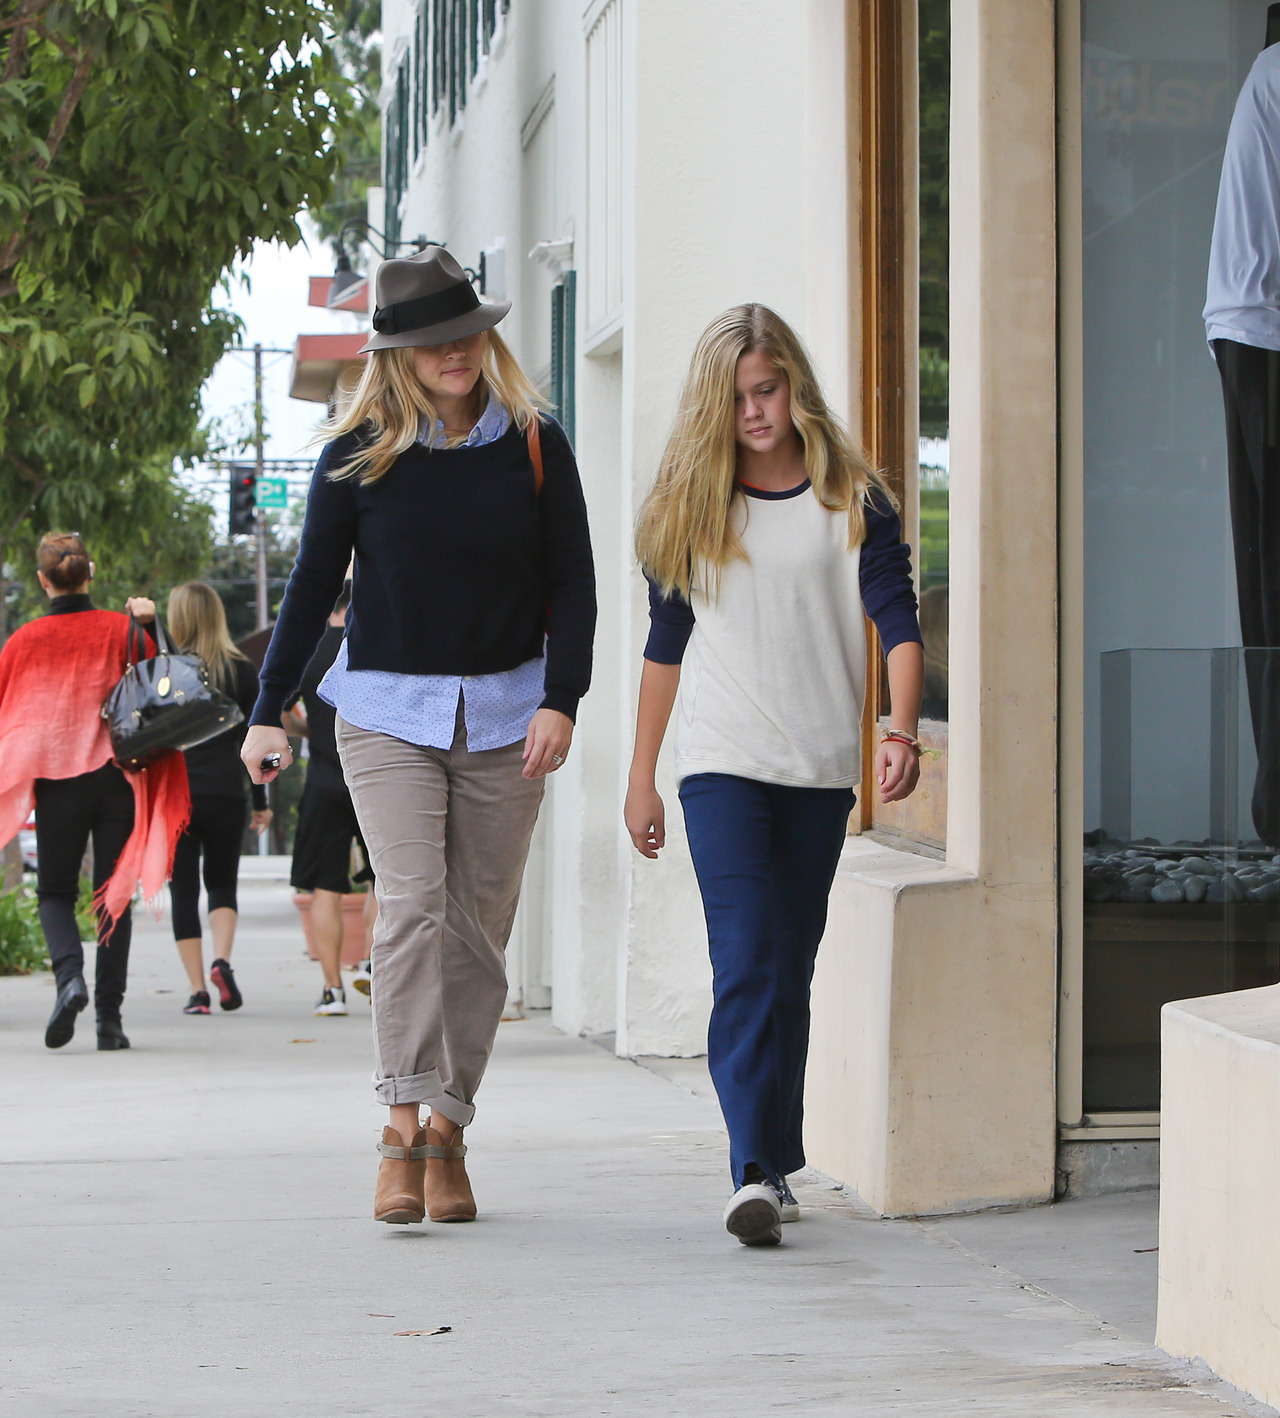 Reese Witherspoon and her daughter Ava in LA, November 23rd Ava looks just like her mom did when she was 15 and in the movie The Man in the Moon (one of my favorite 90's movies)